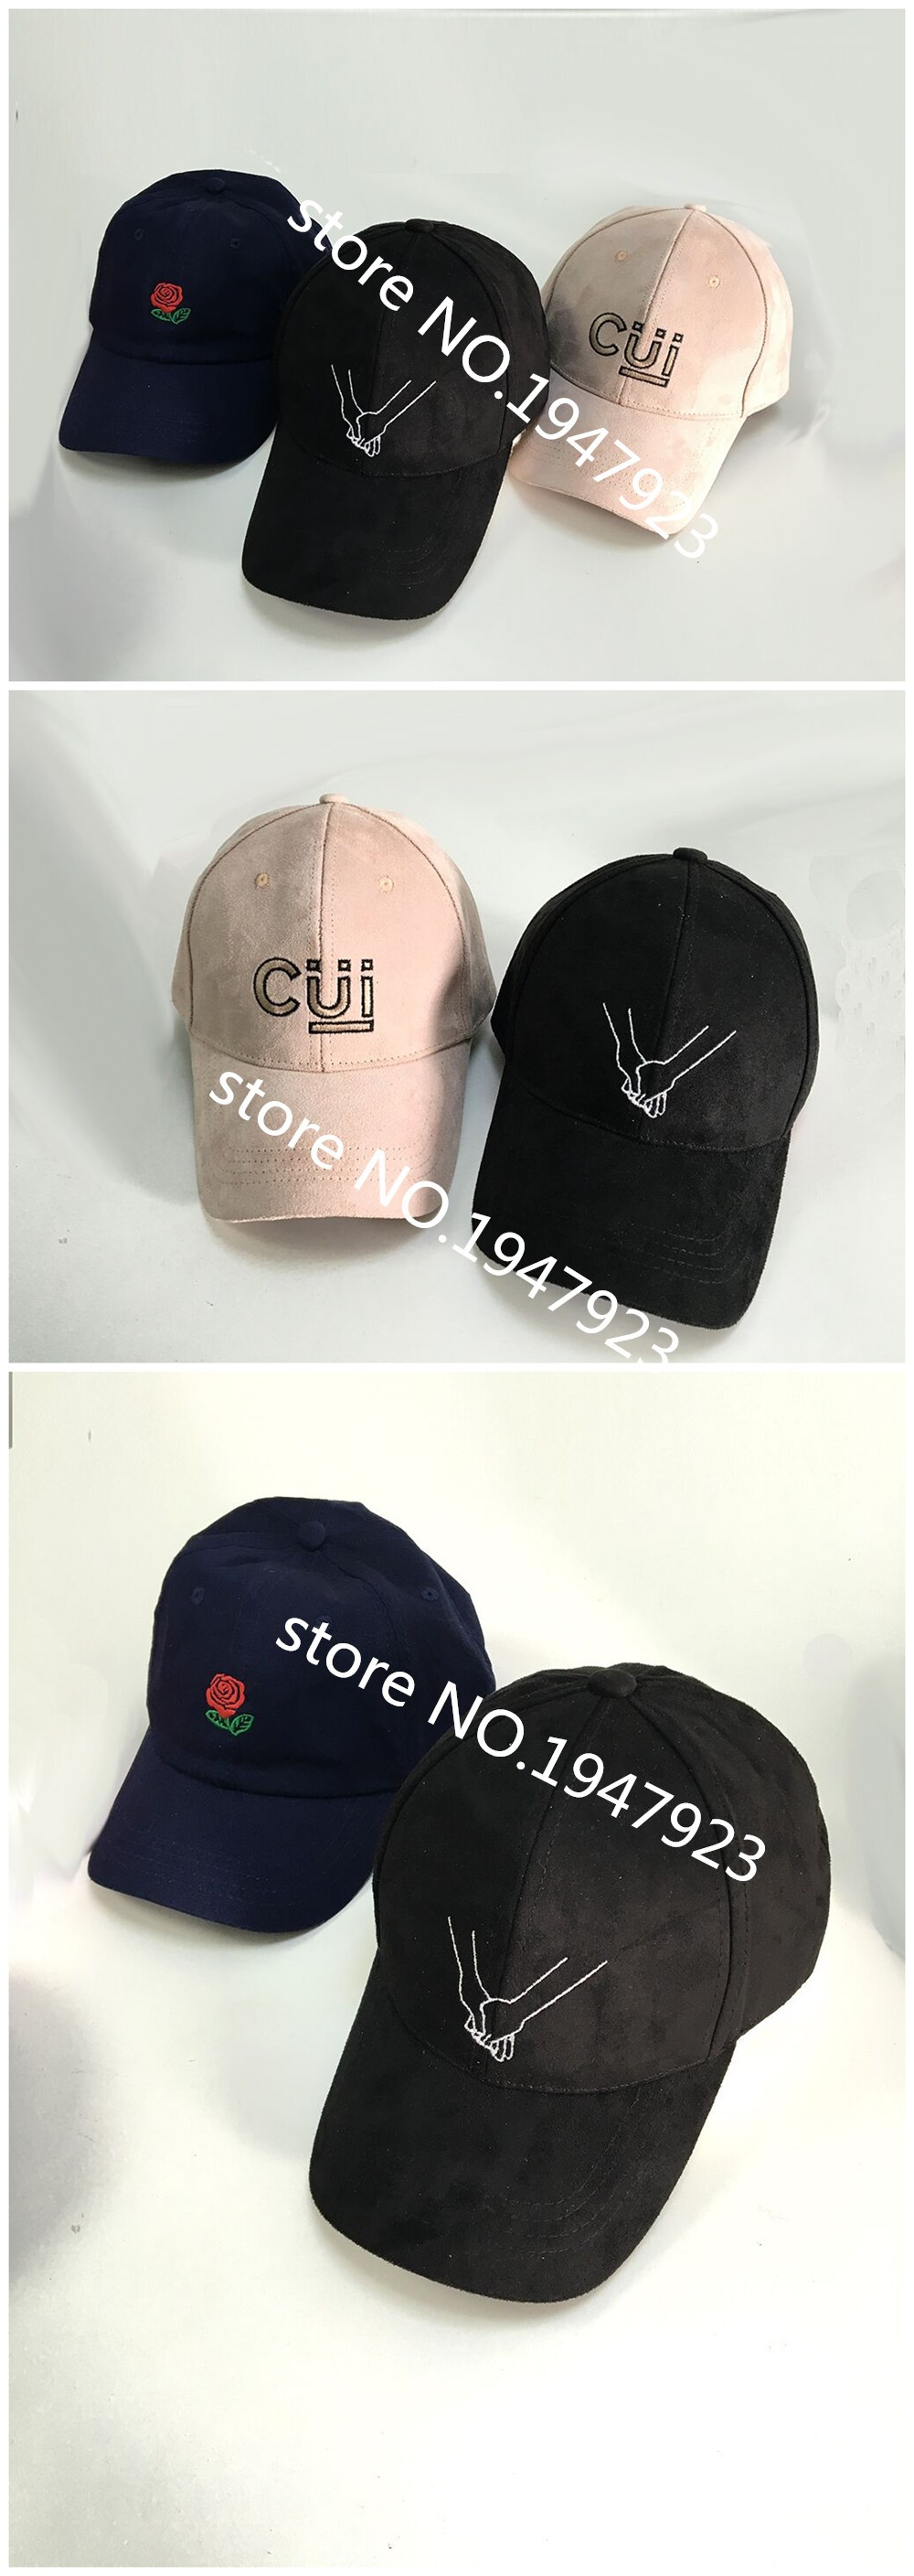 c8df1b74553 2015 Man Baseball Fitted Hats New Caps Casual Sports Suede Snapback ...